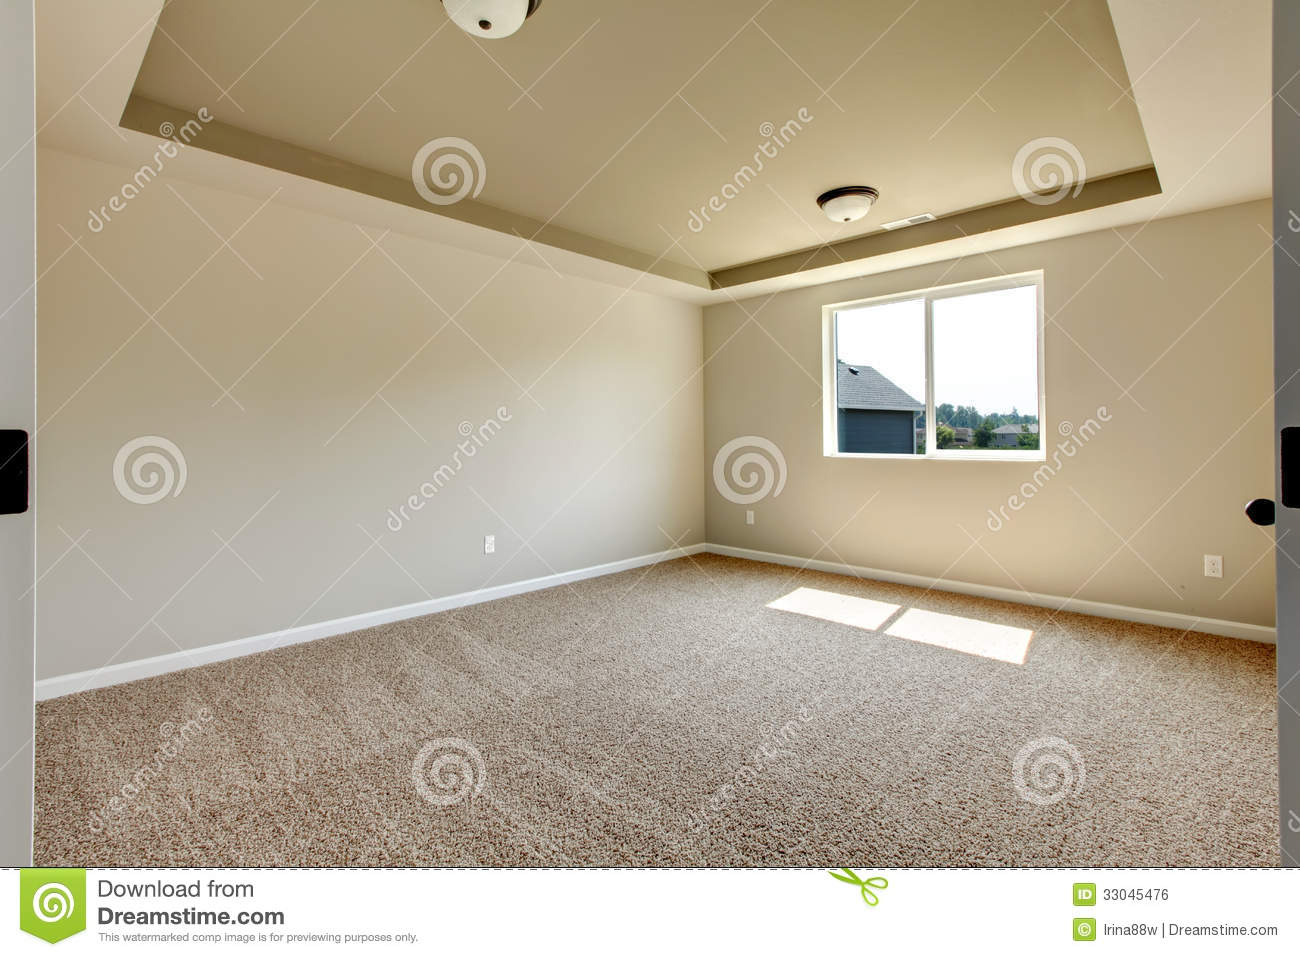 New empty room with beige carpet royalty free stock image for How to carpet a room